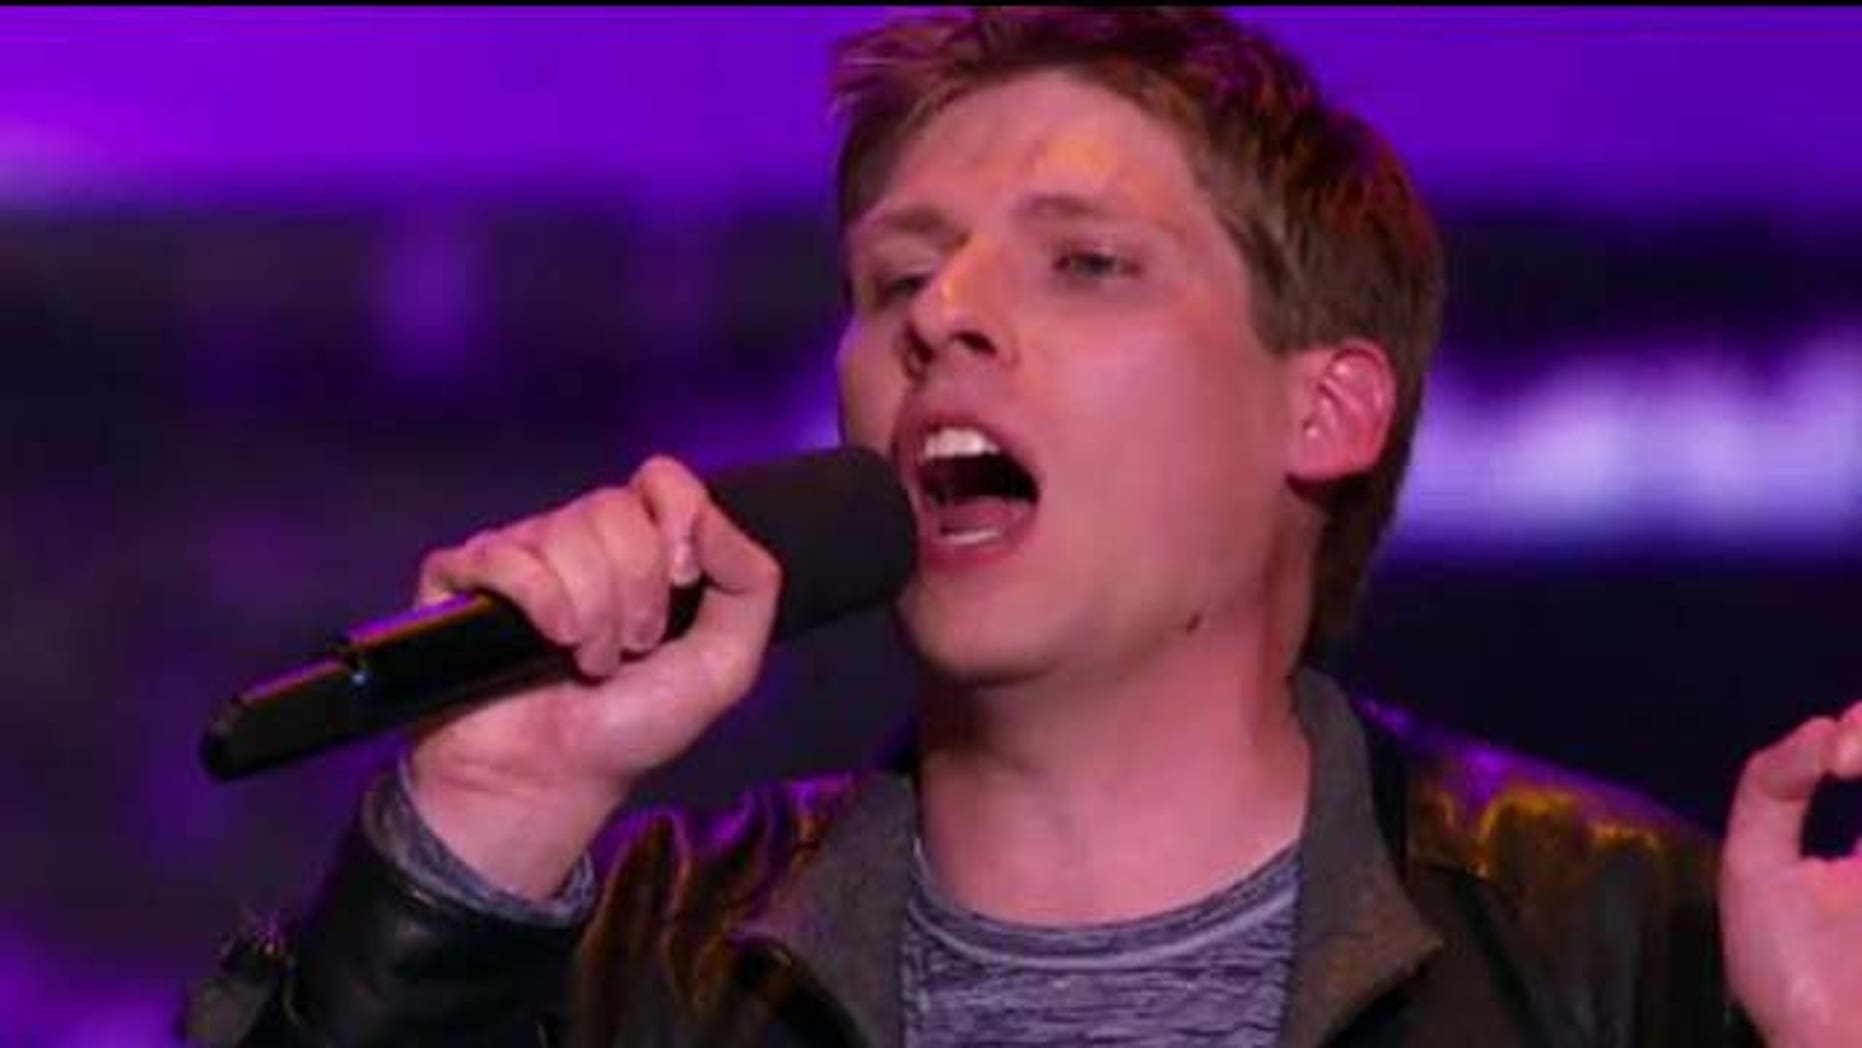 Sept. 28, 2011: J. Mark Inman sings on The X Factor's Chicago auditions.